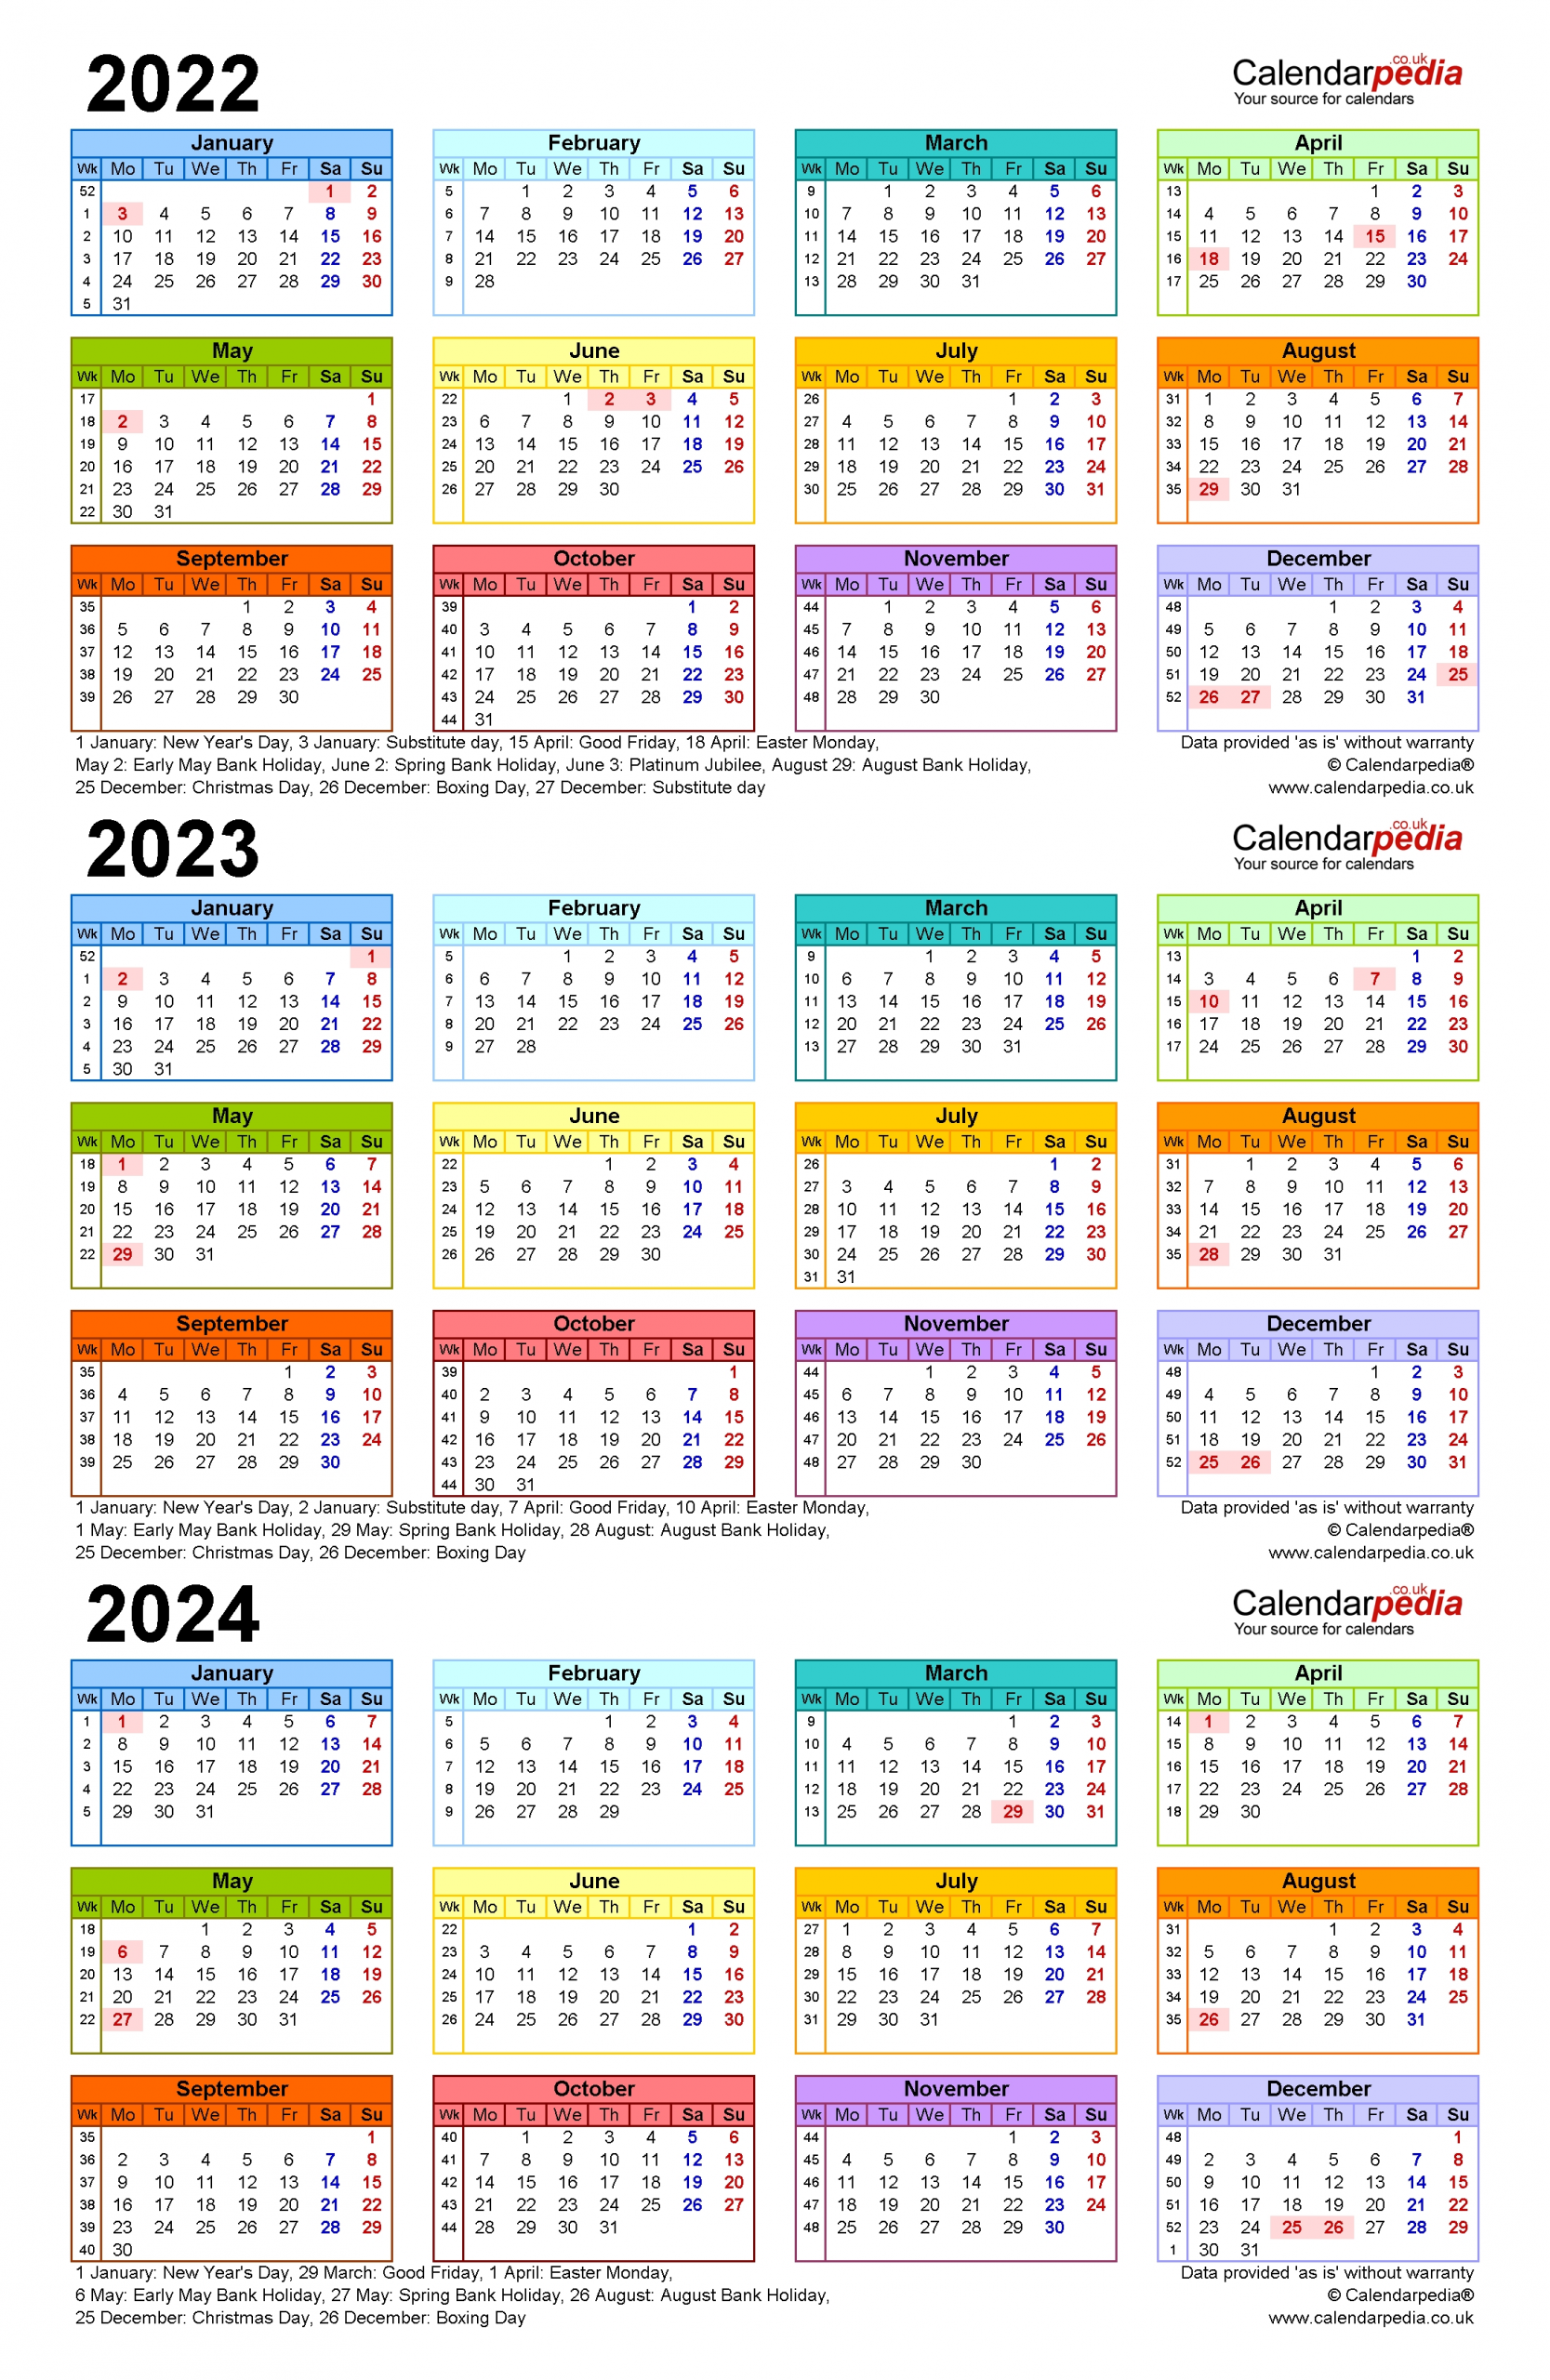 Three Year Calendars For 2022, 2023 & 2024 (Uk) For Pdf